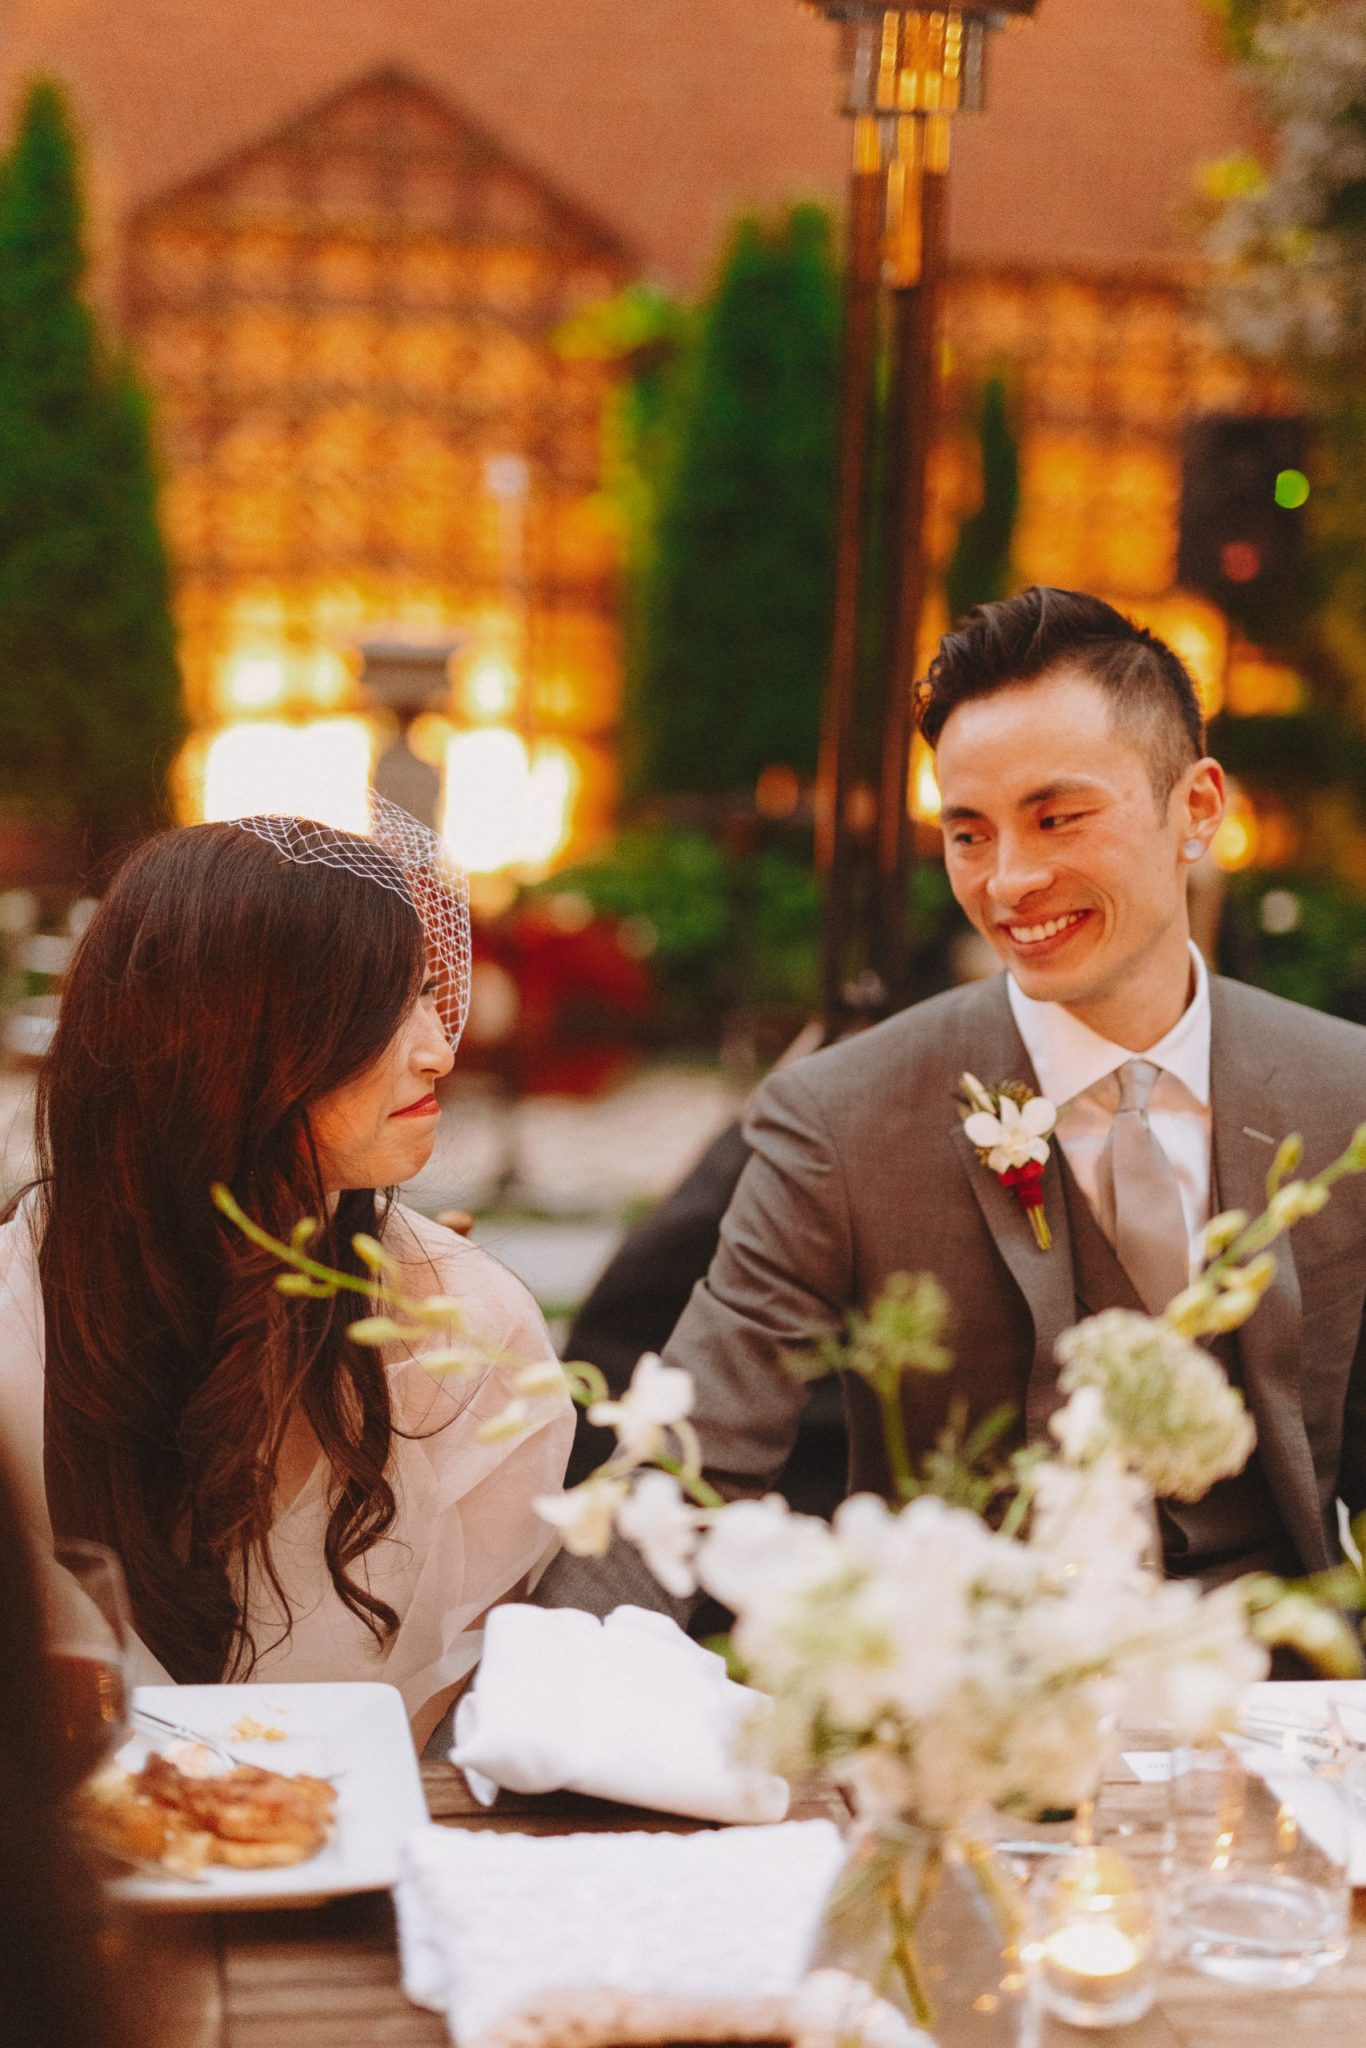 Bride and groom at the table looking at one another smiling